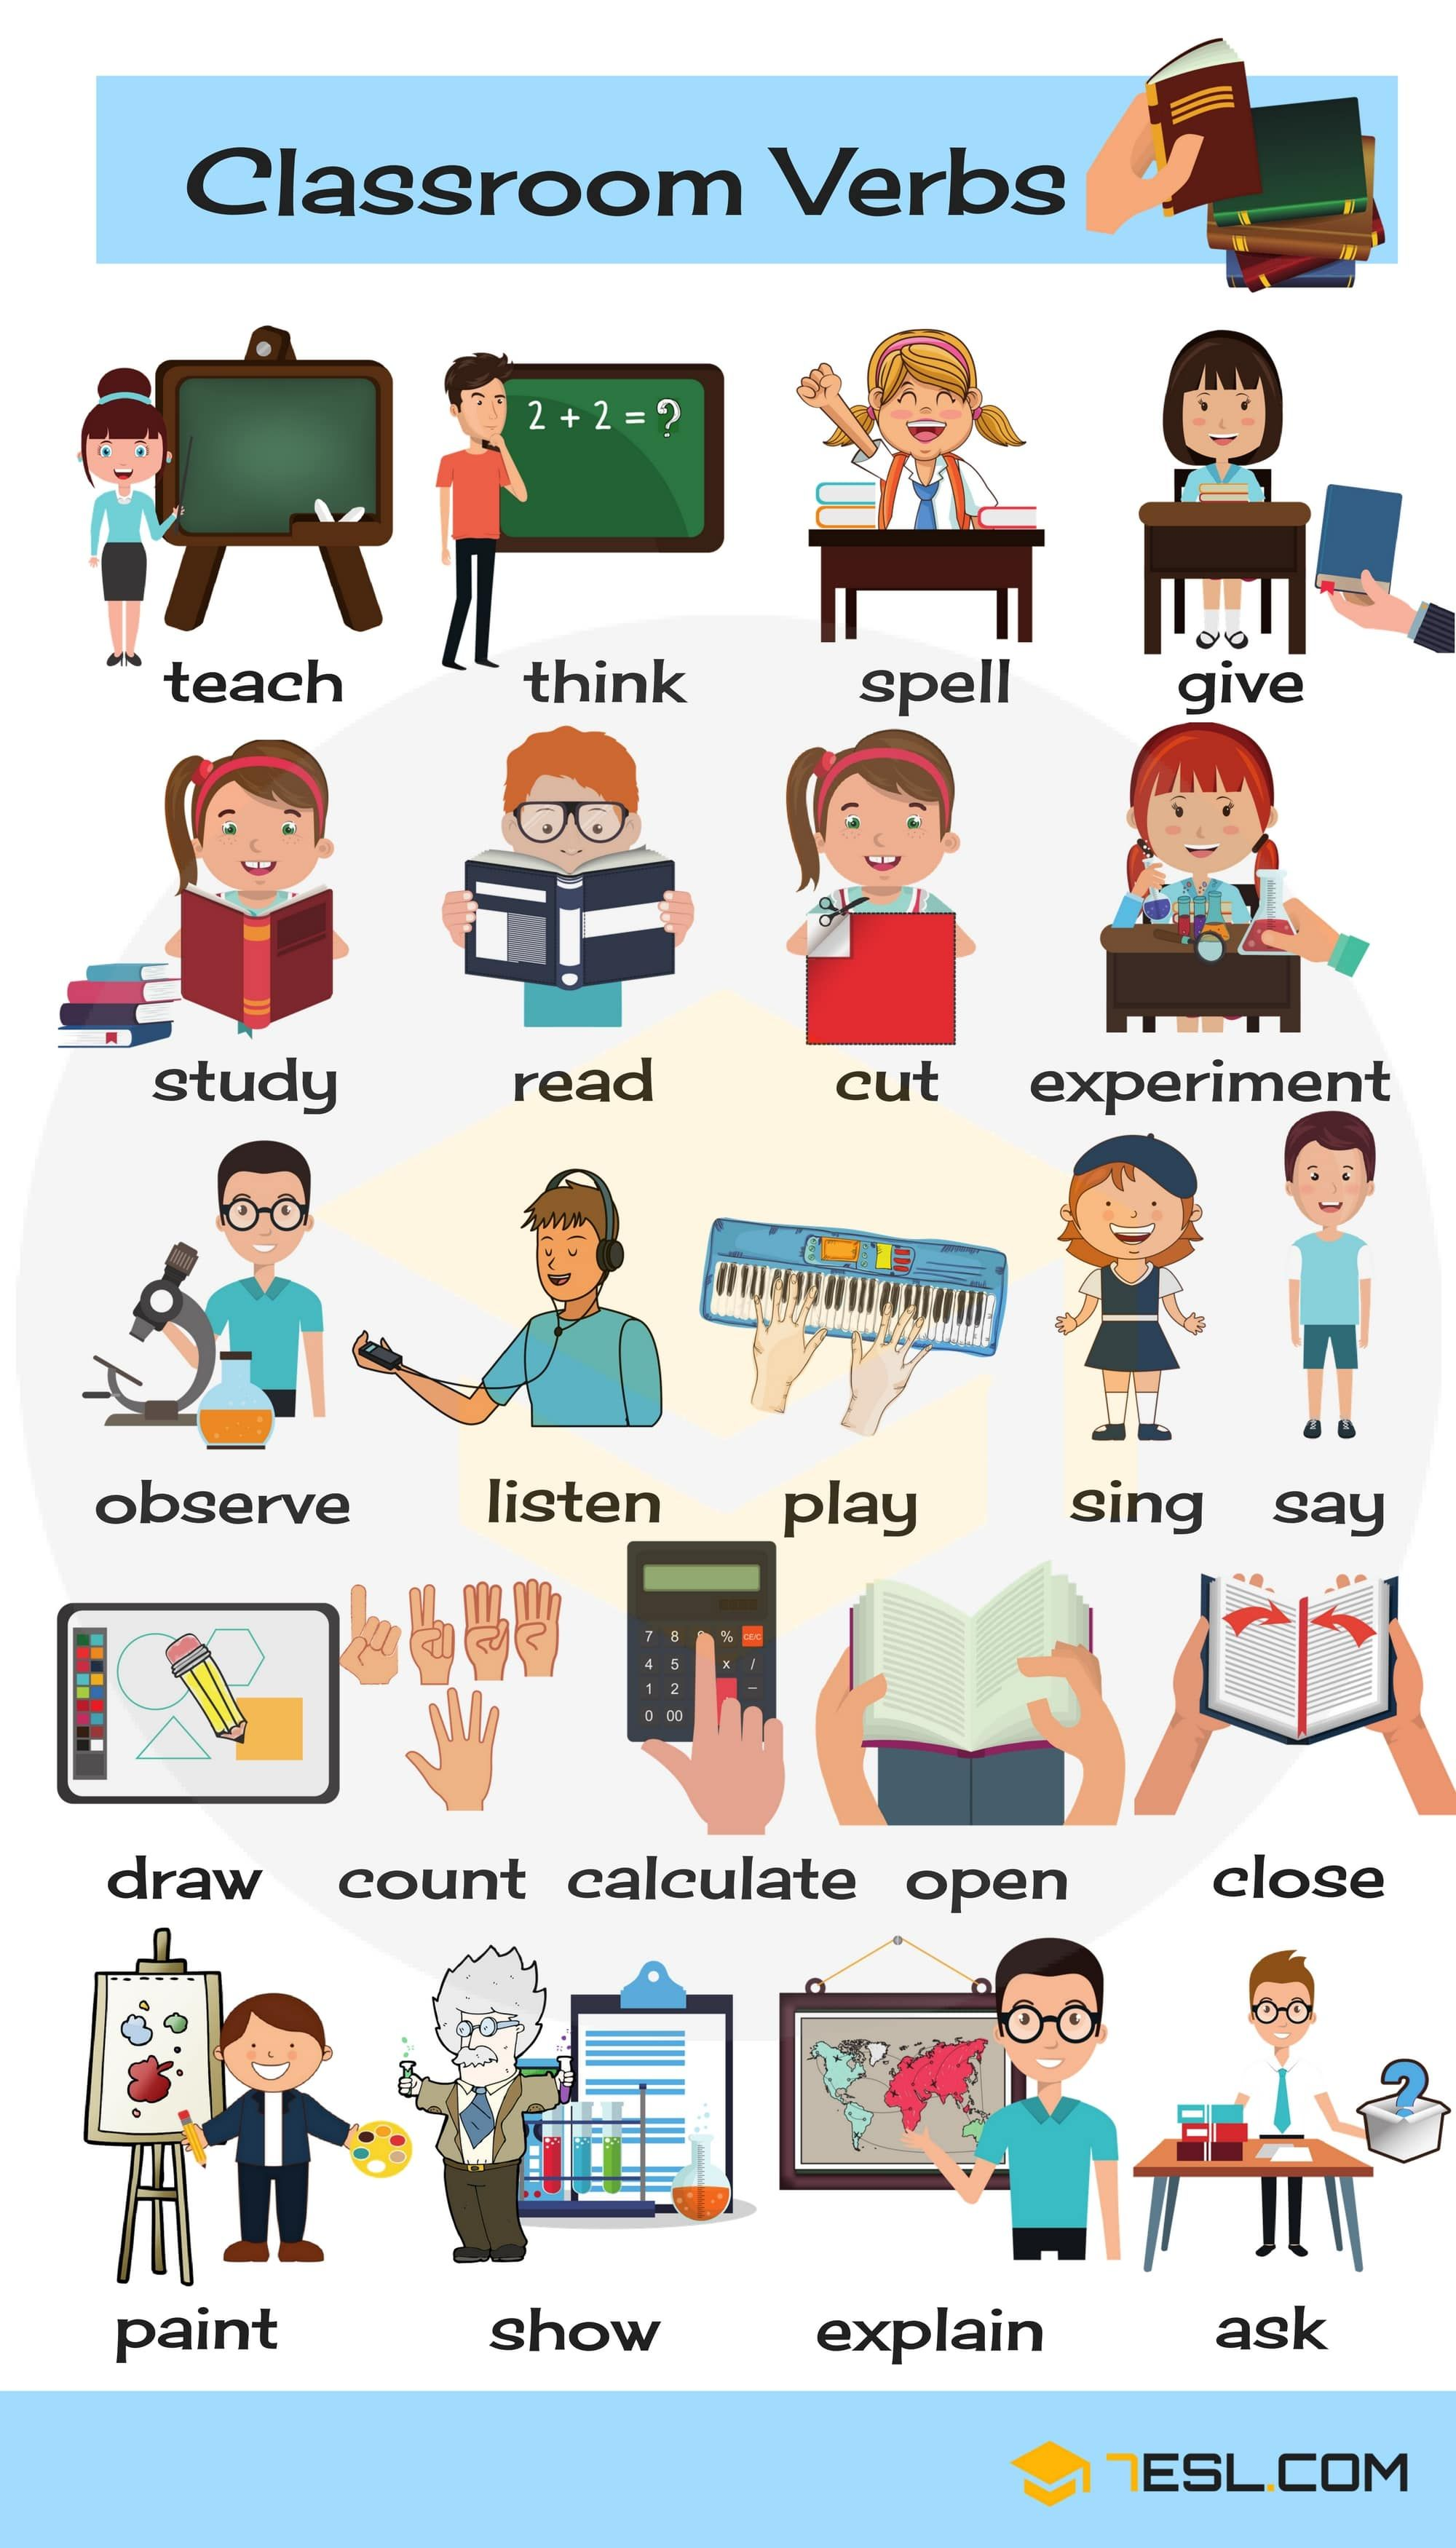 Classroom Verbs List Of School Verbs With Pictures With Images